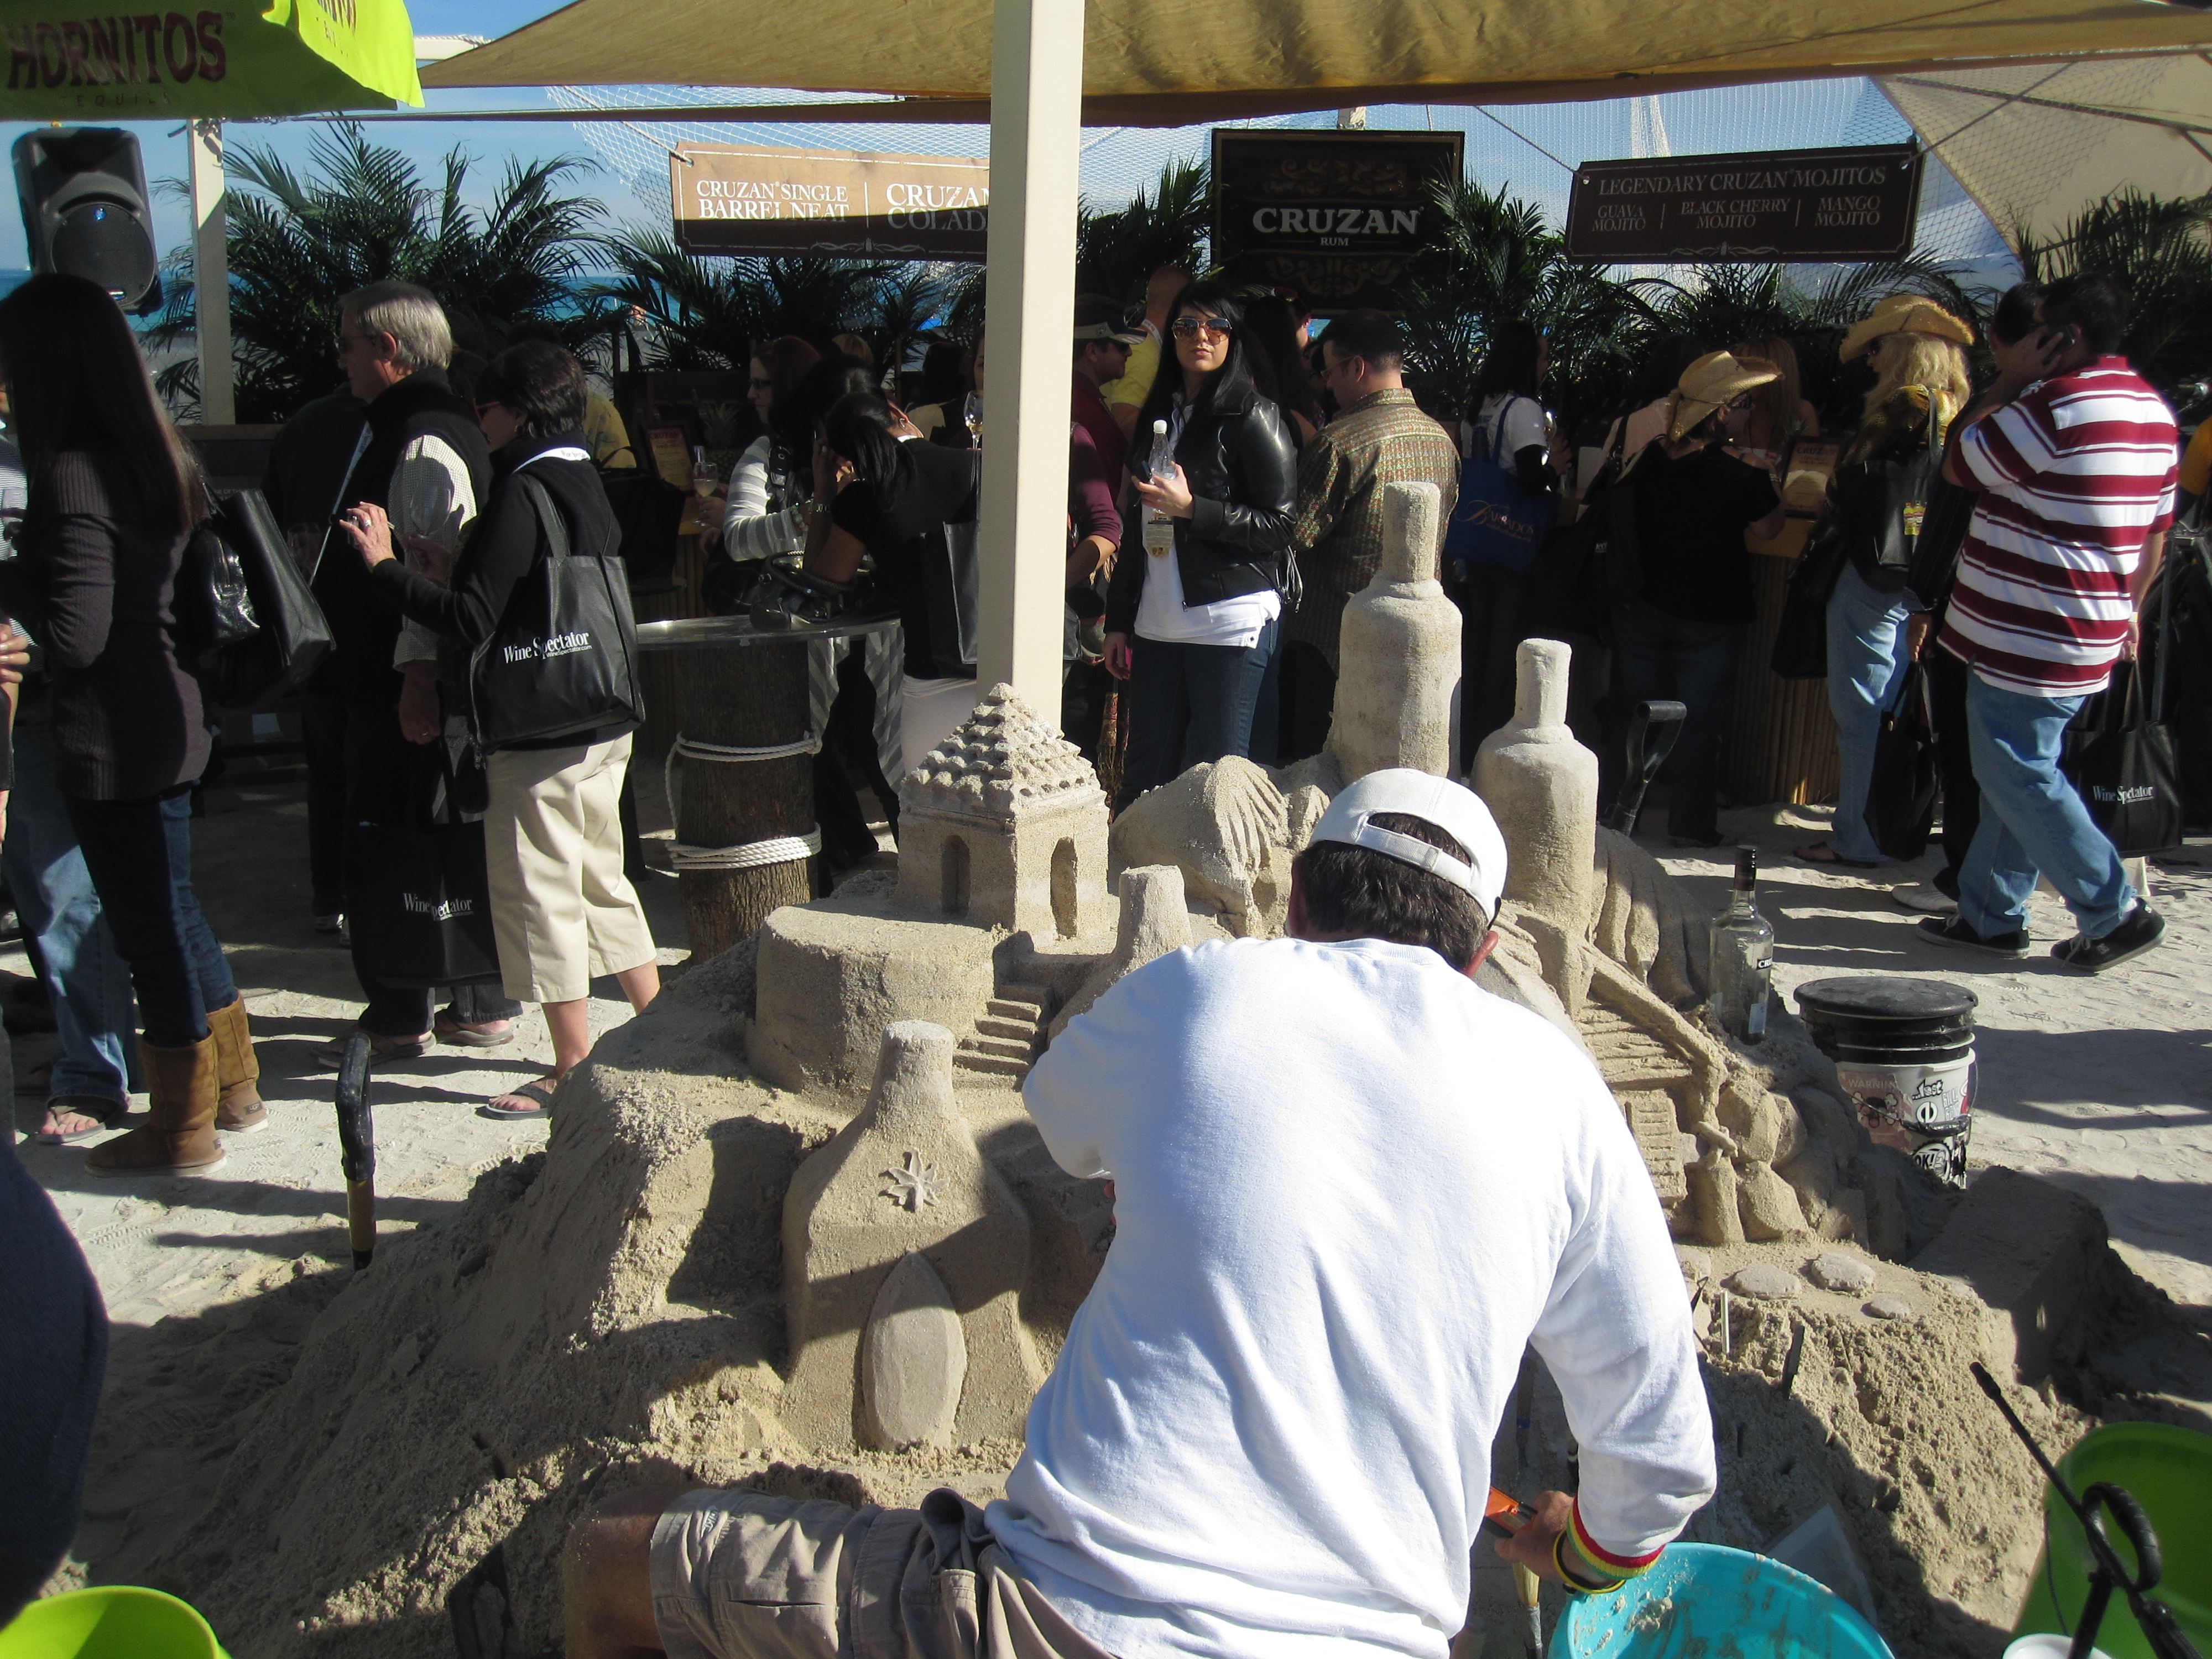 A sand castle is being made in the middle of the two tasting tents, how fun is that?